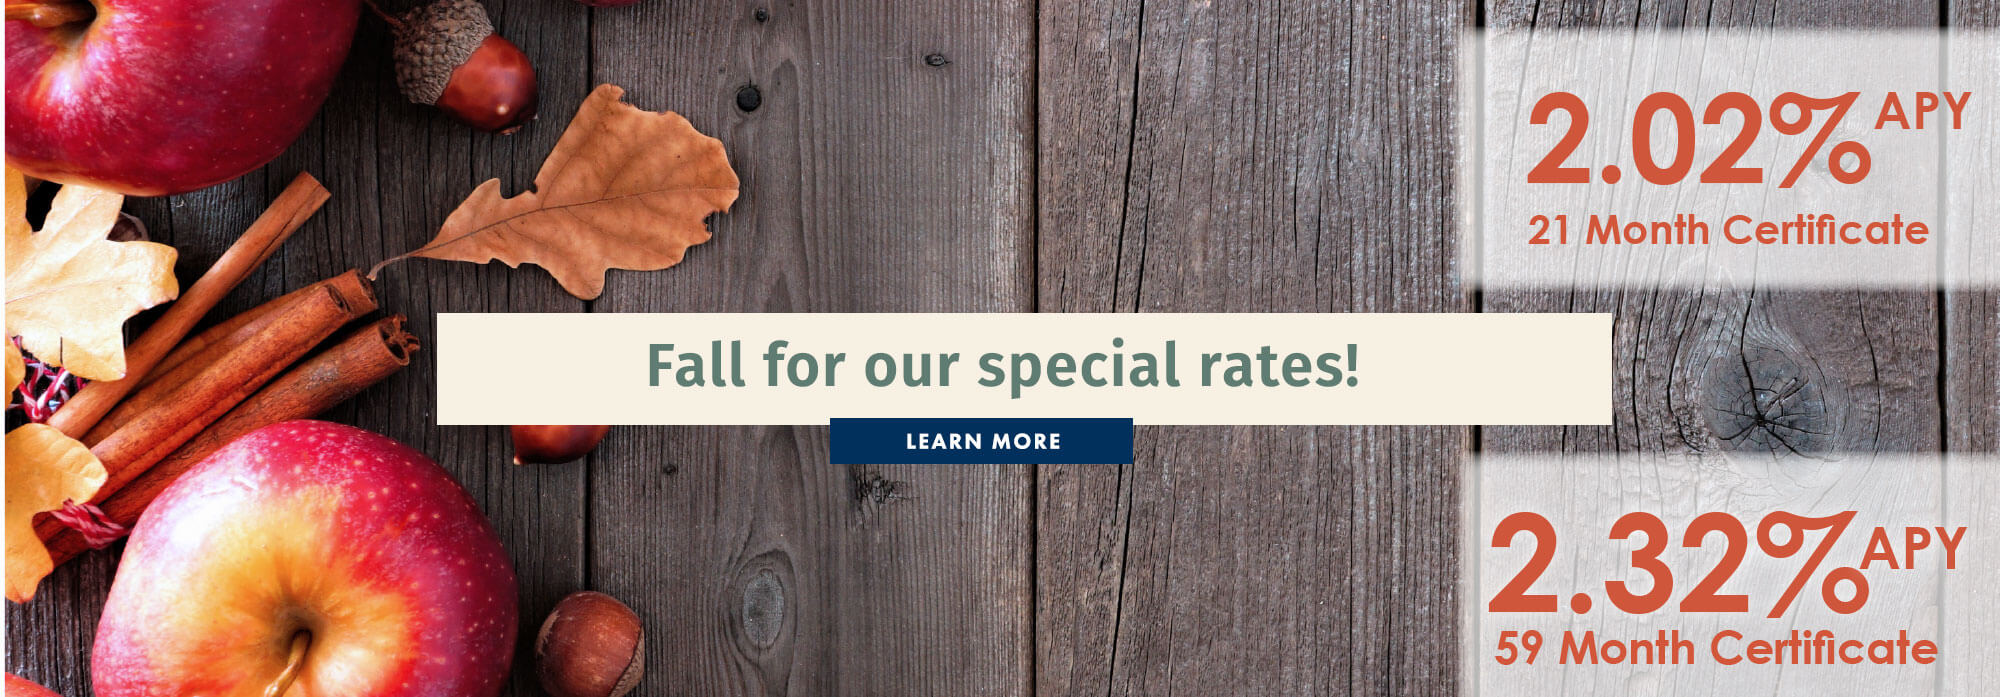 Fall for Our Special Rates